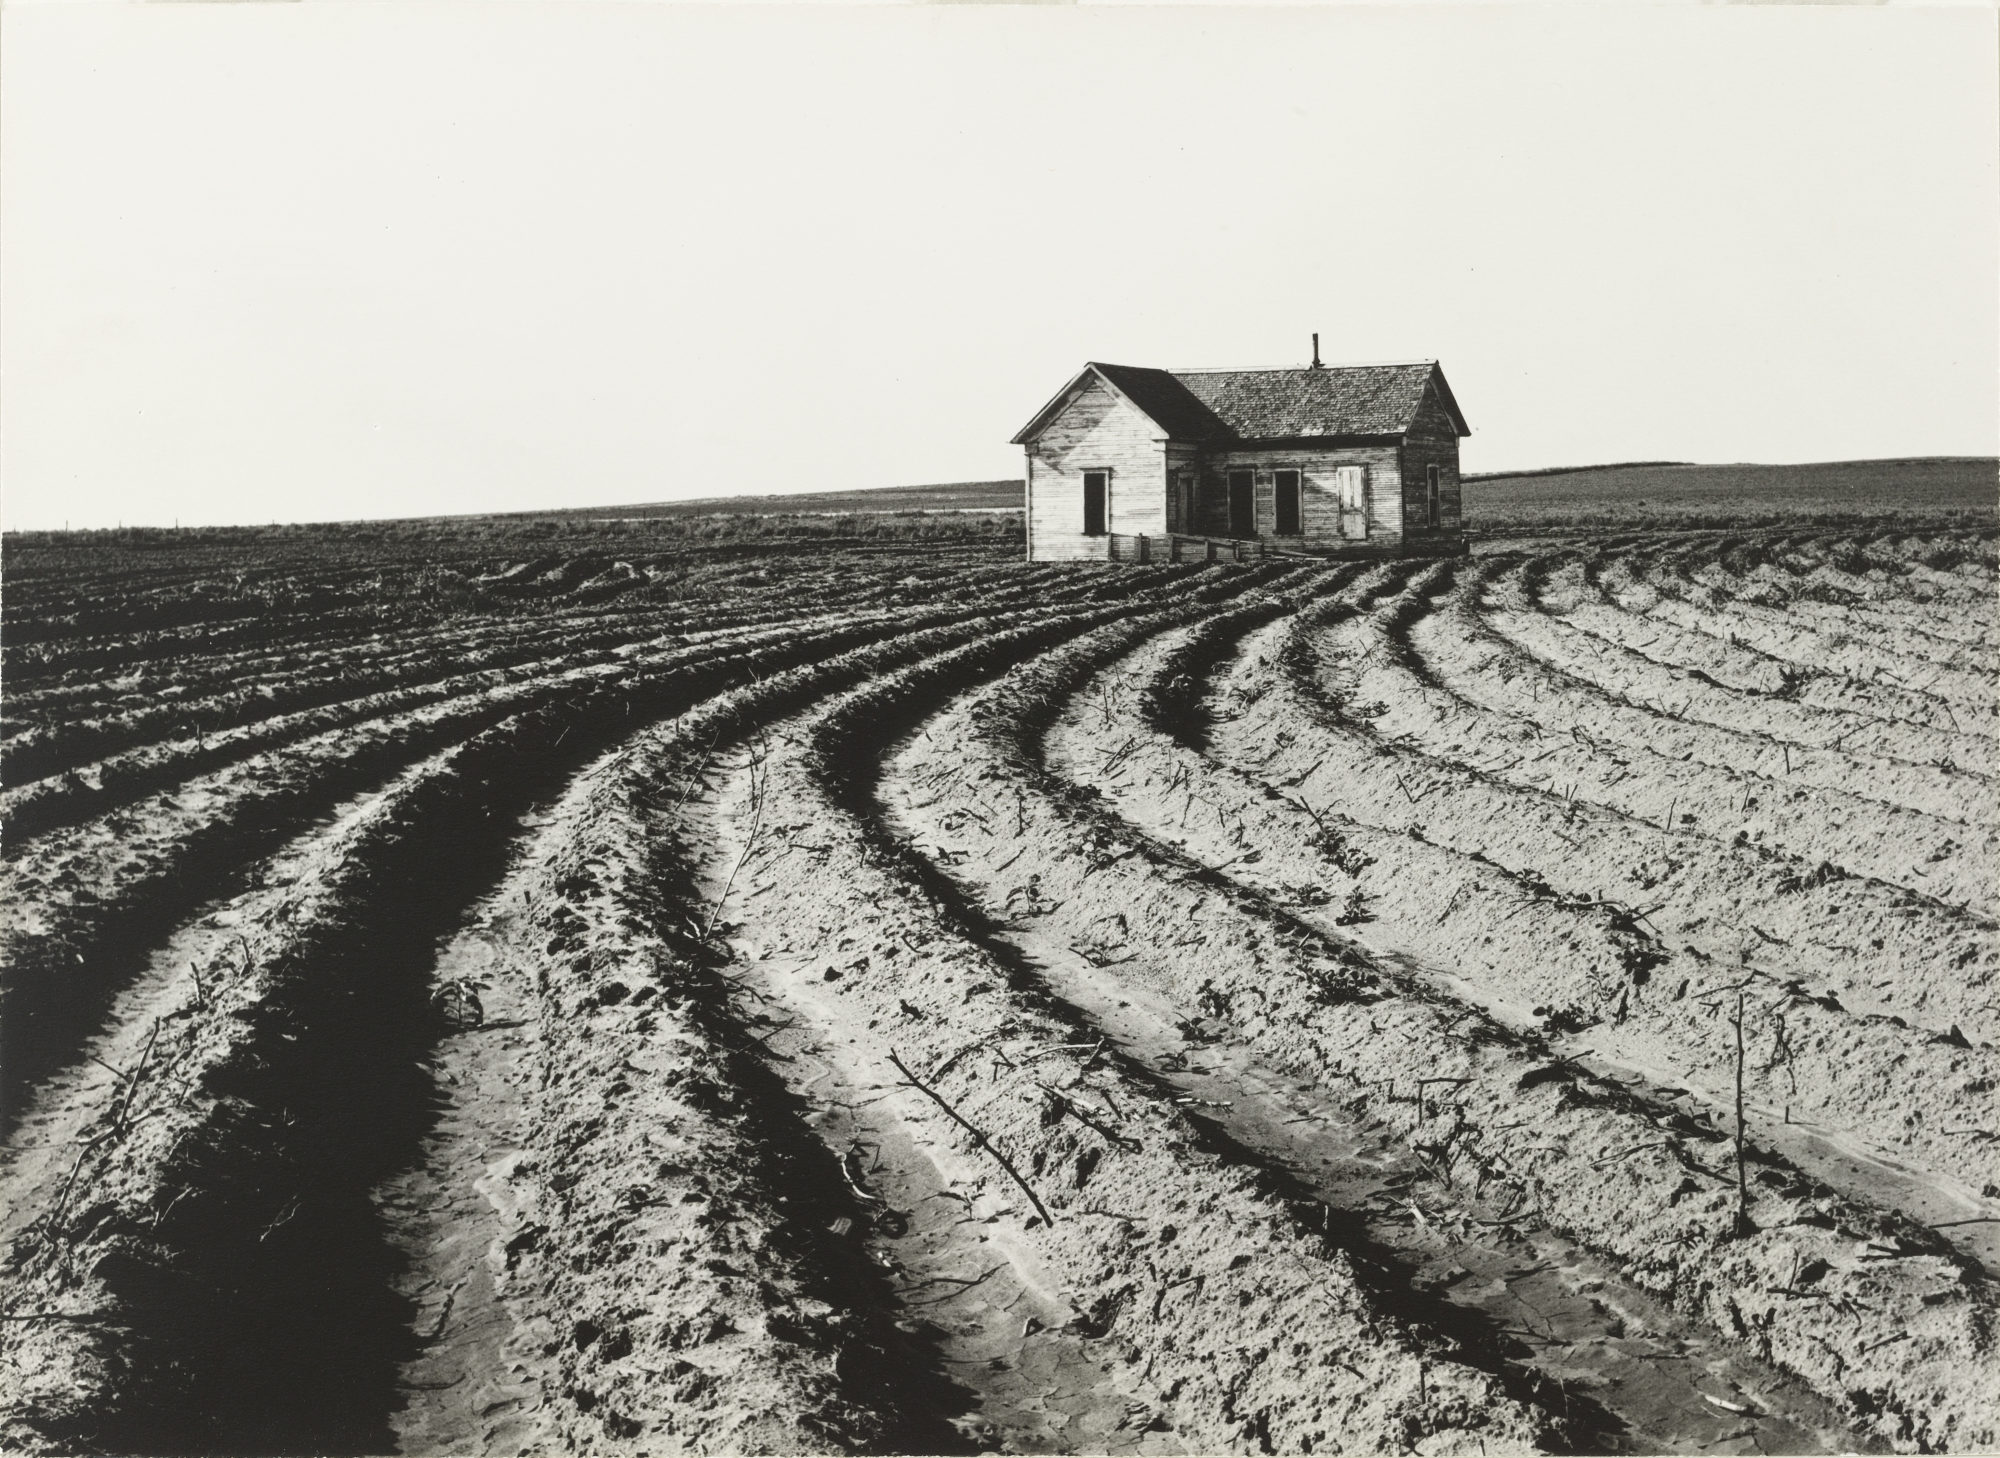 MoMA to Stage Dorothea Lange Retrospective in 2020